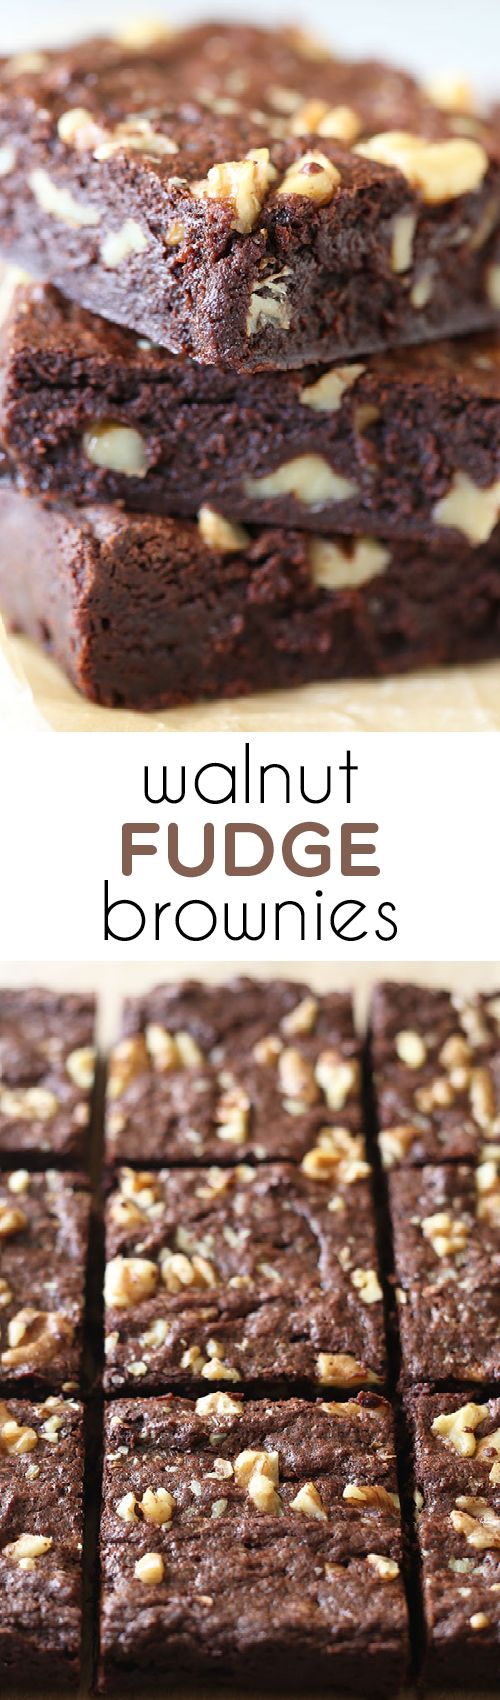 Our new GO-TO brownie recipe!! So much better than box mix brownies, but practically as easy! Walnut Fudge Brownies. from @handleheat